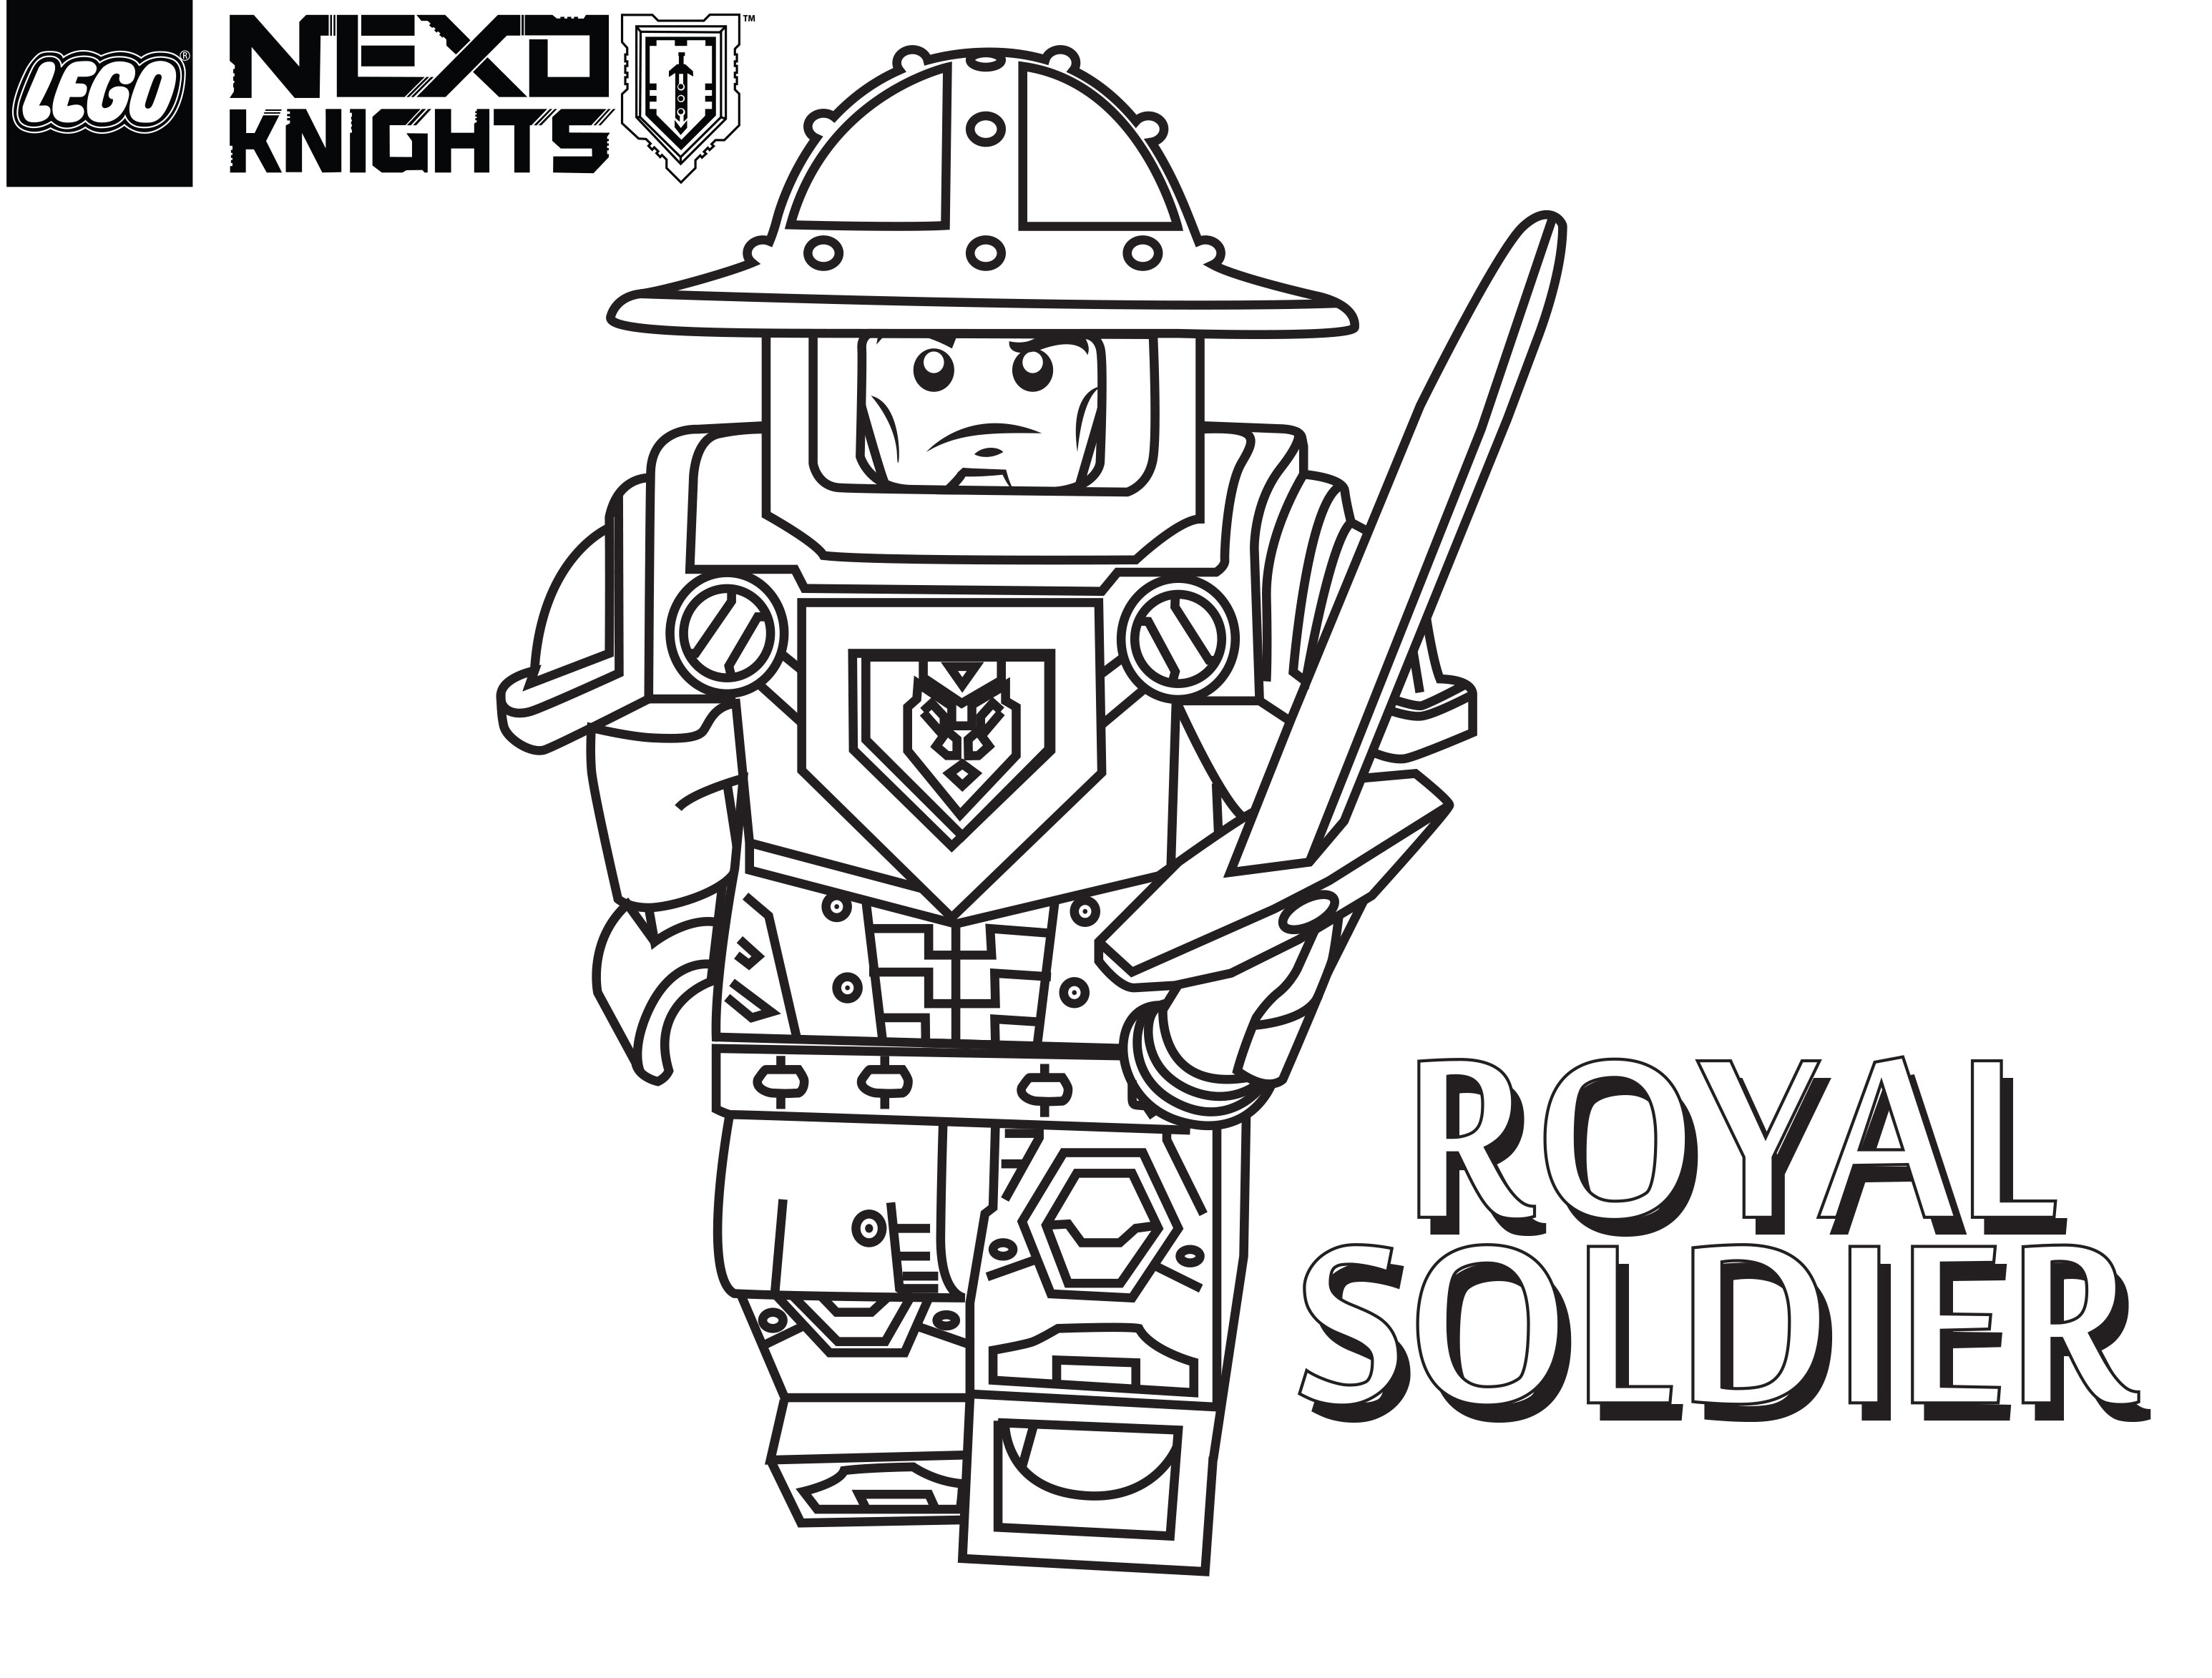 Lego Nexo Knights Coloring Pages : Lego knights coloring pages